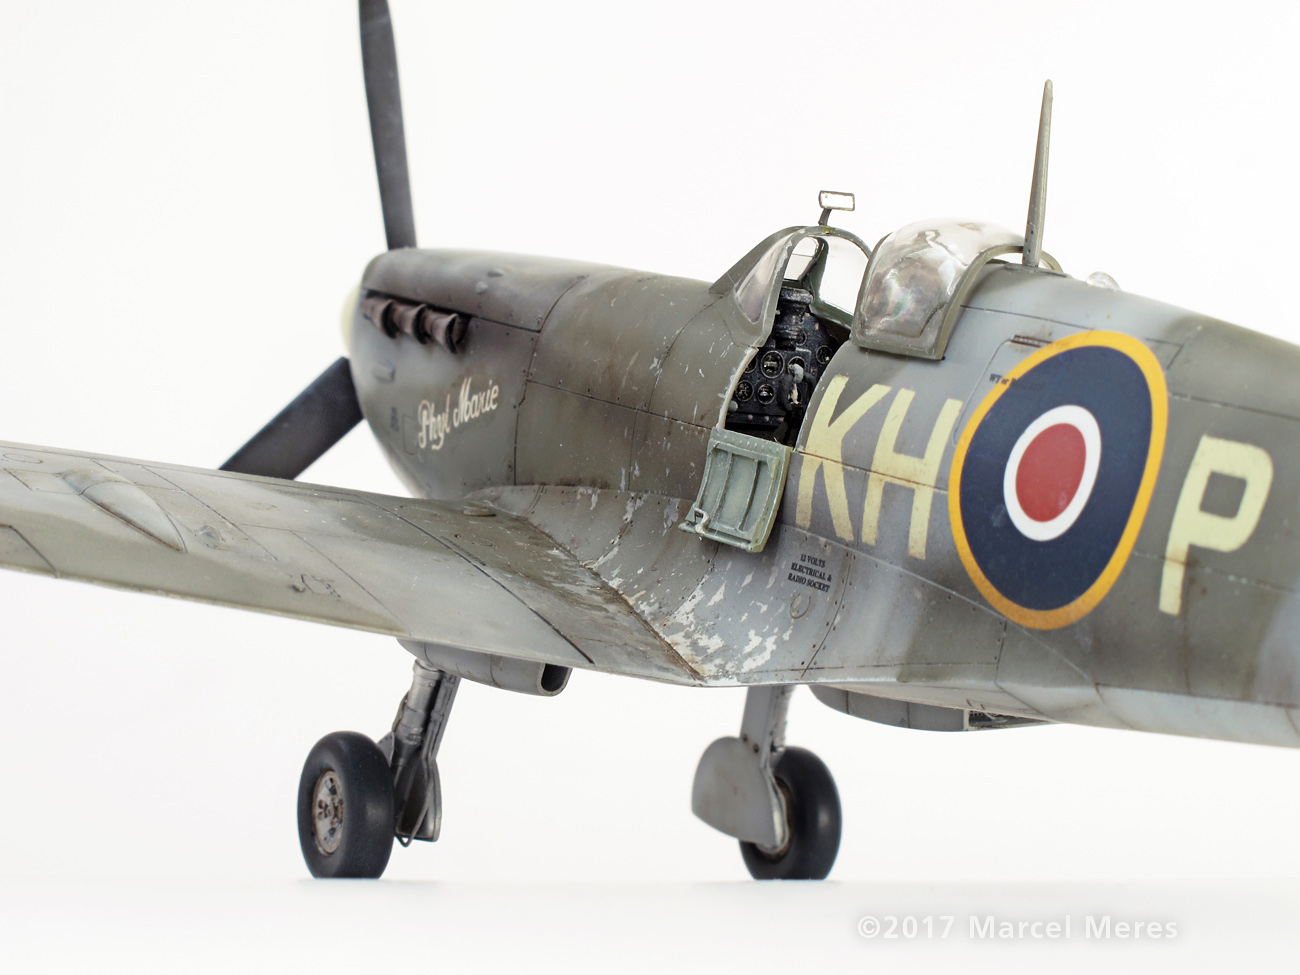 Spitfire Mk.Vb Tamiya 1/48 Phyl Marie, Close-up view from rear and down, Port side